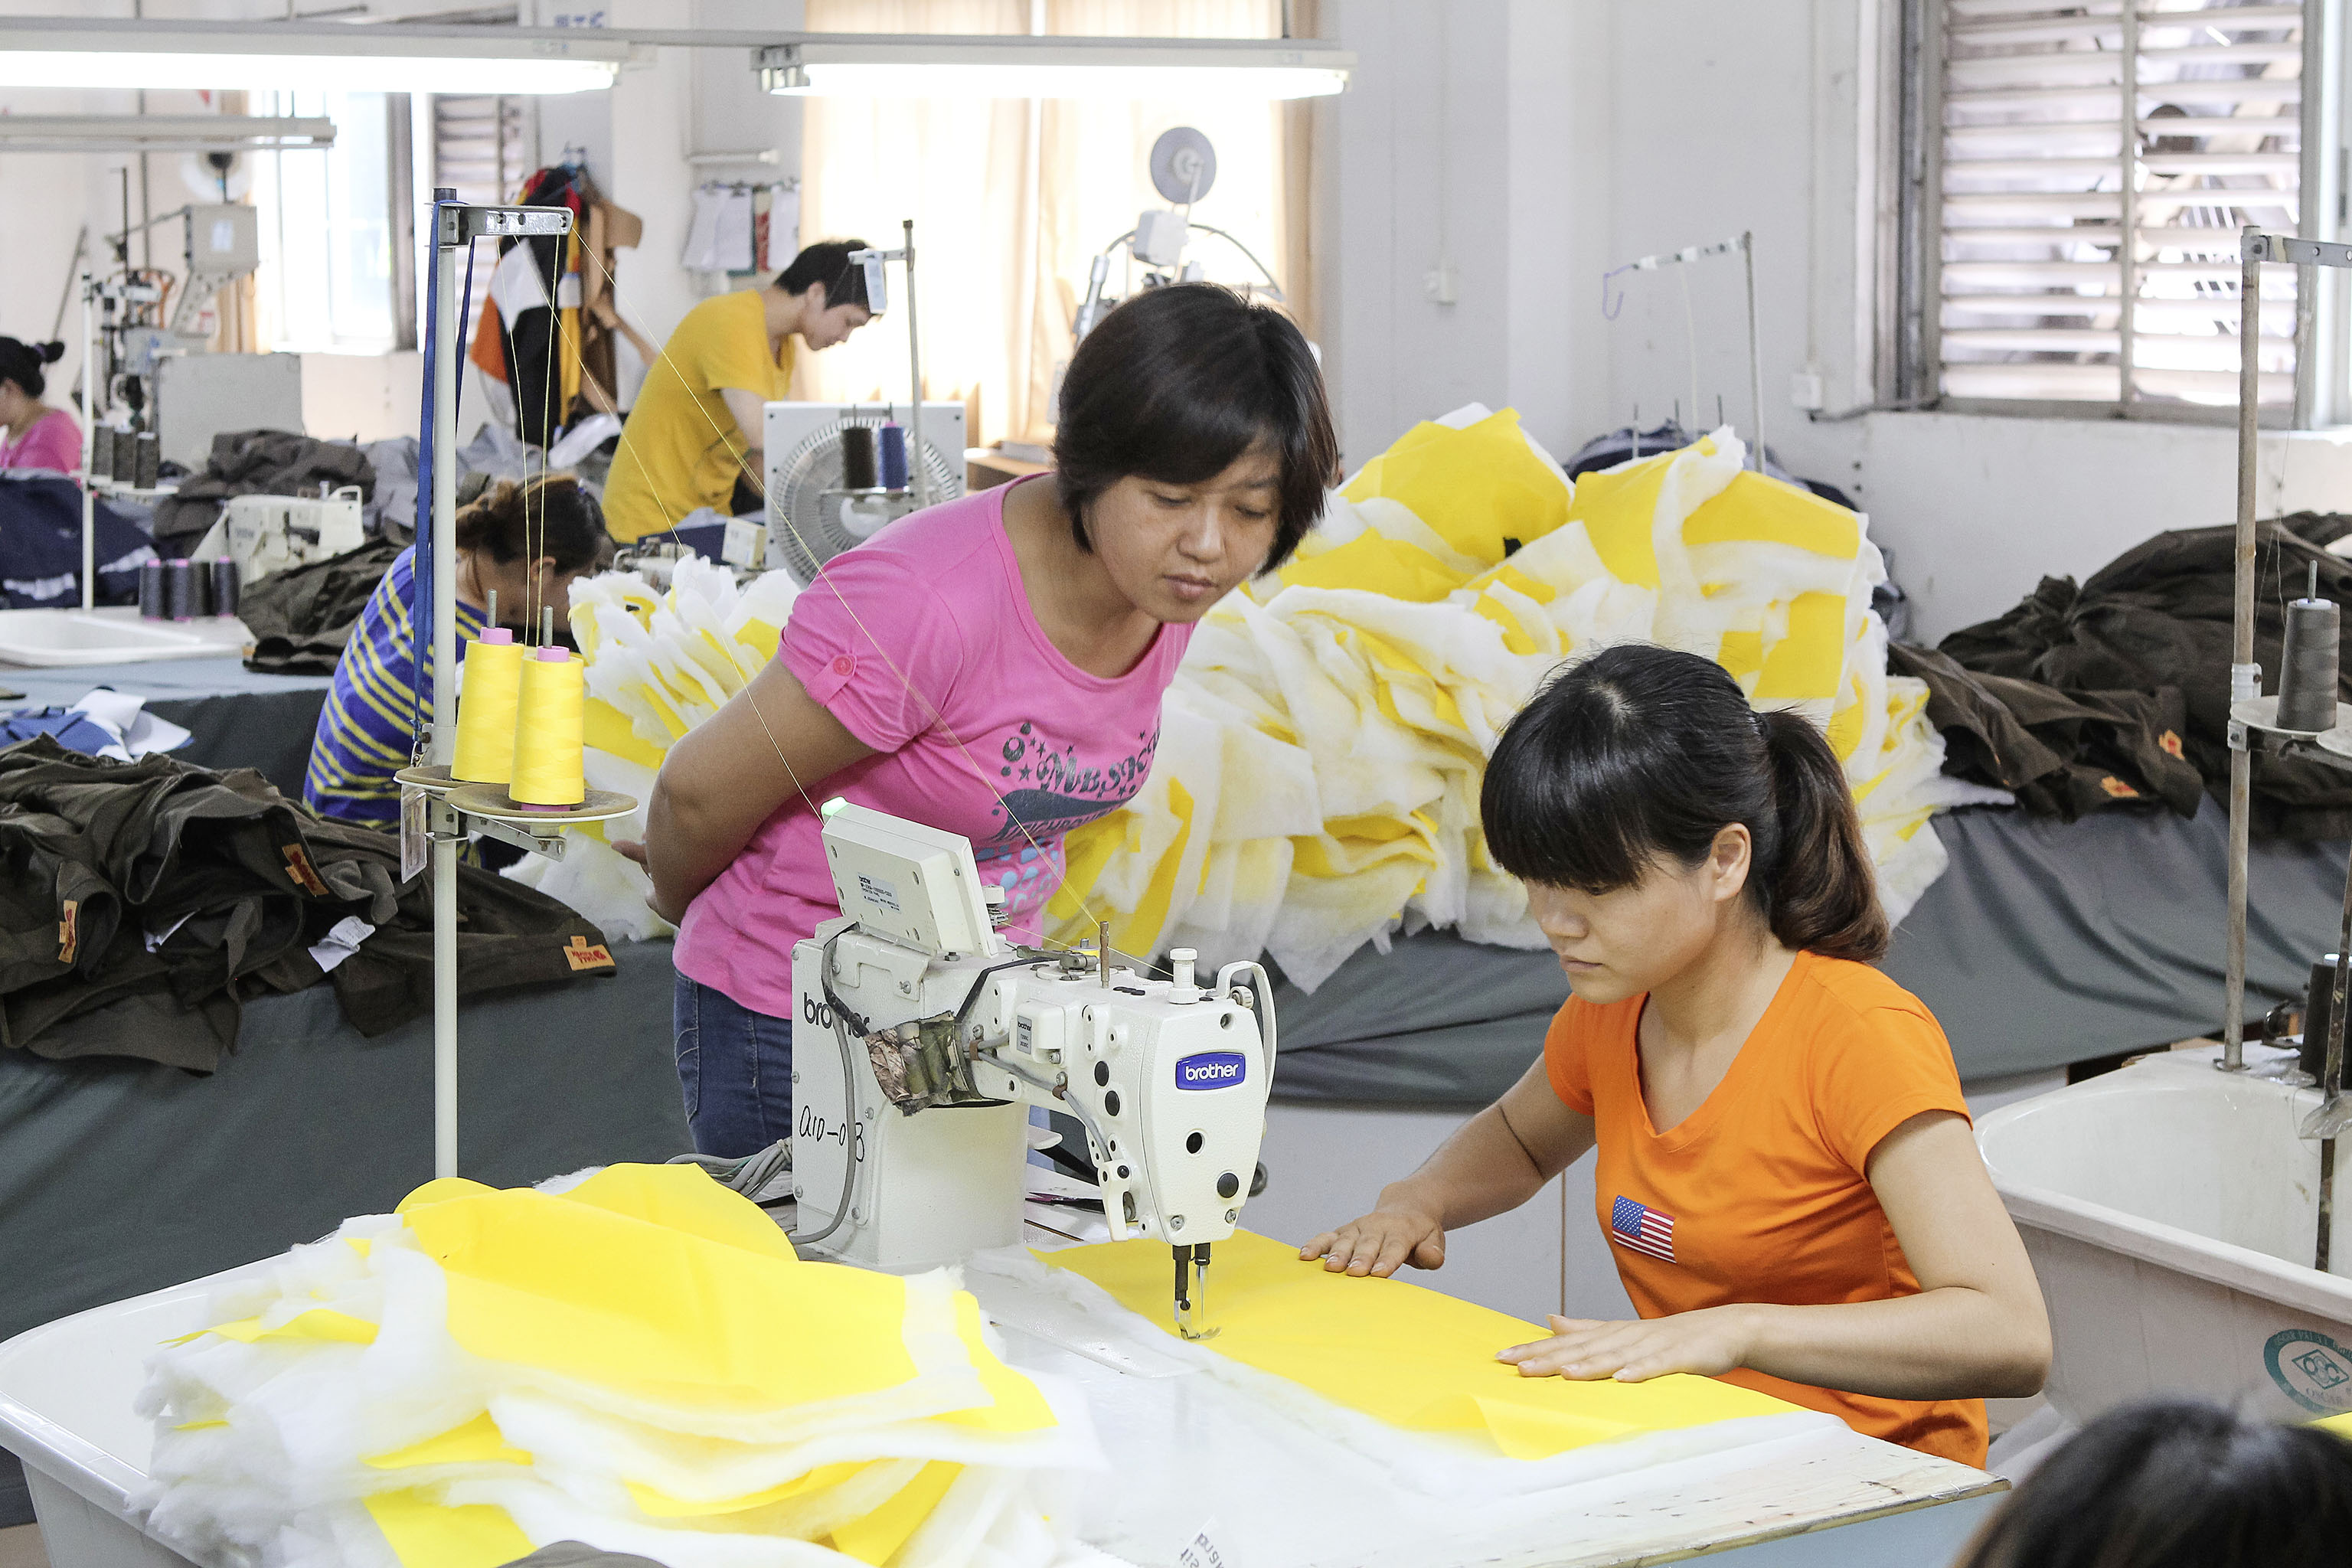 Chinese production for German label Vaude, a company that has been working on making its supply chains sustainable since 2001.